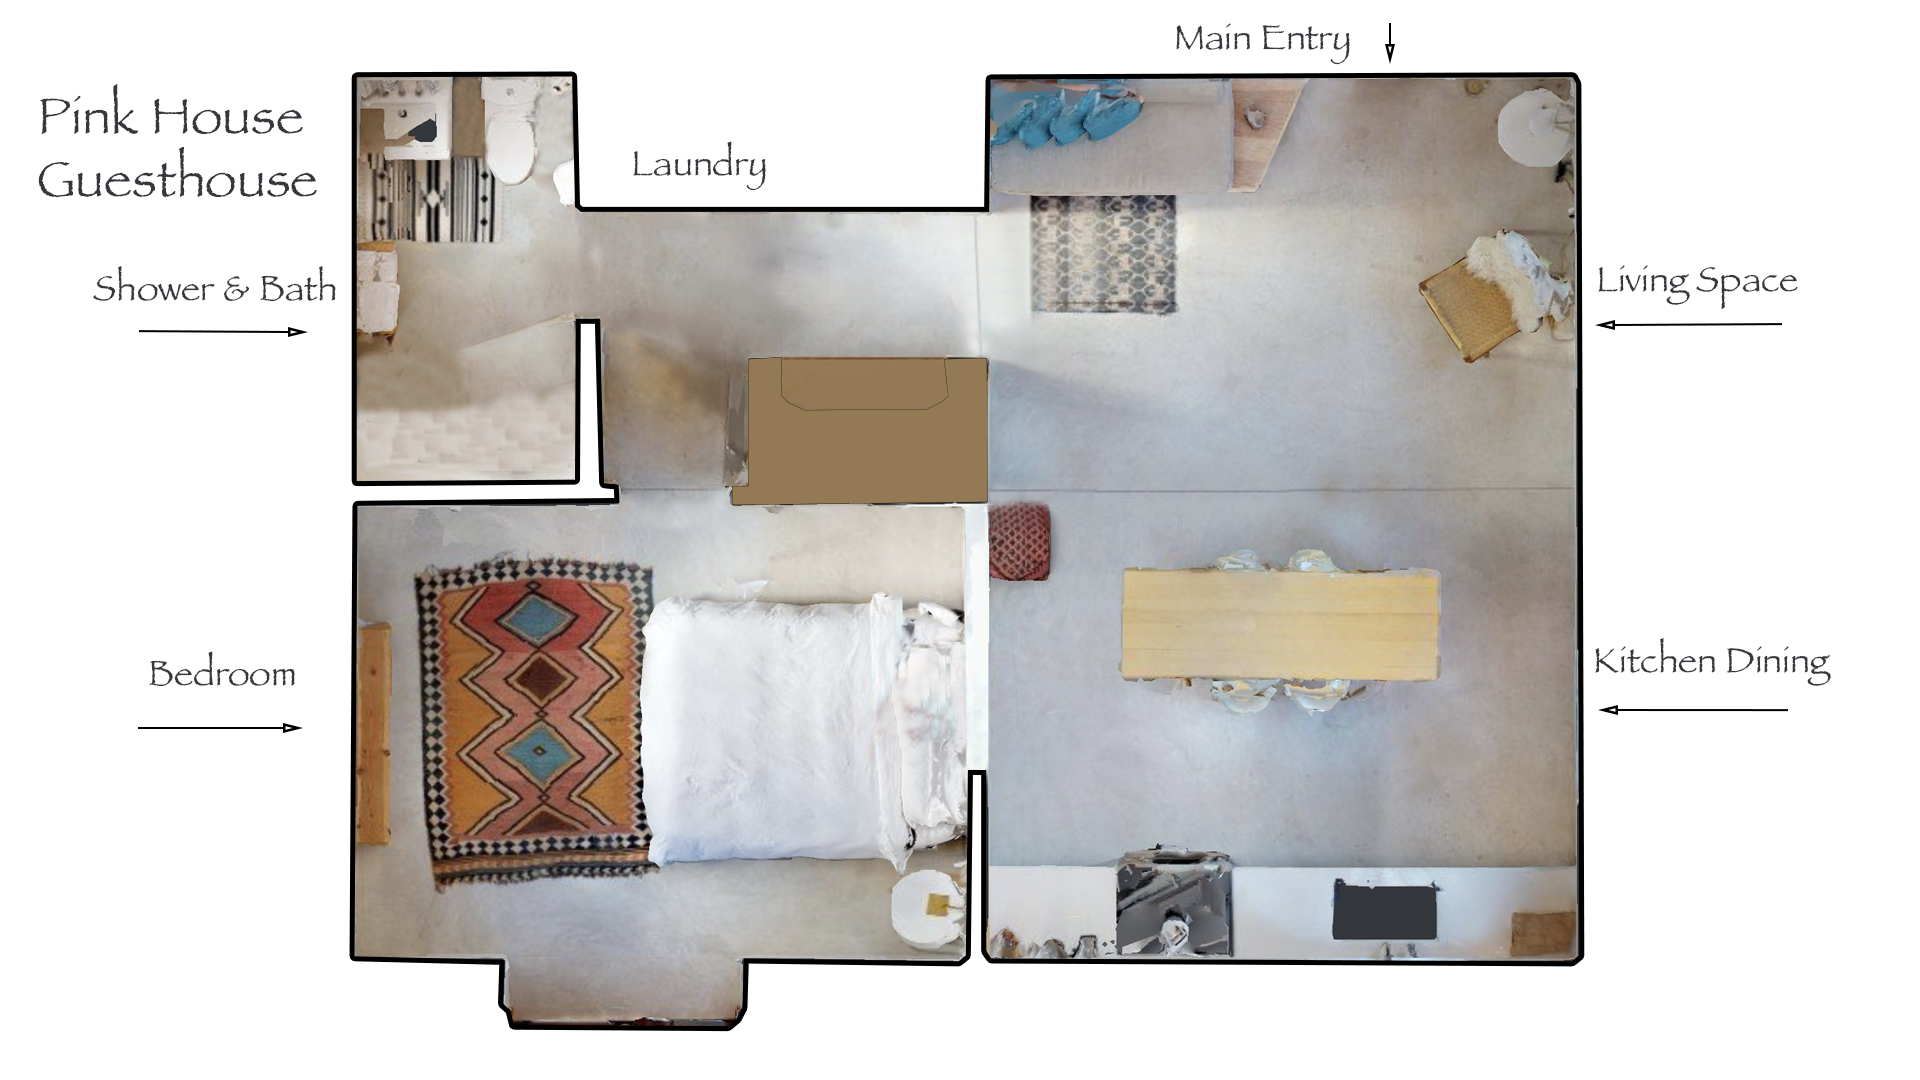 Floor Plan for Pink House Guesthouse